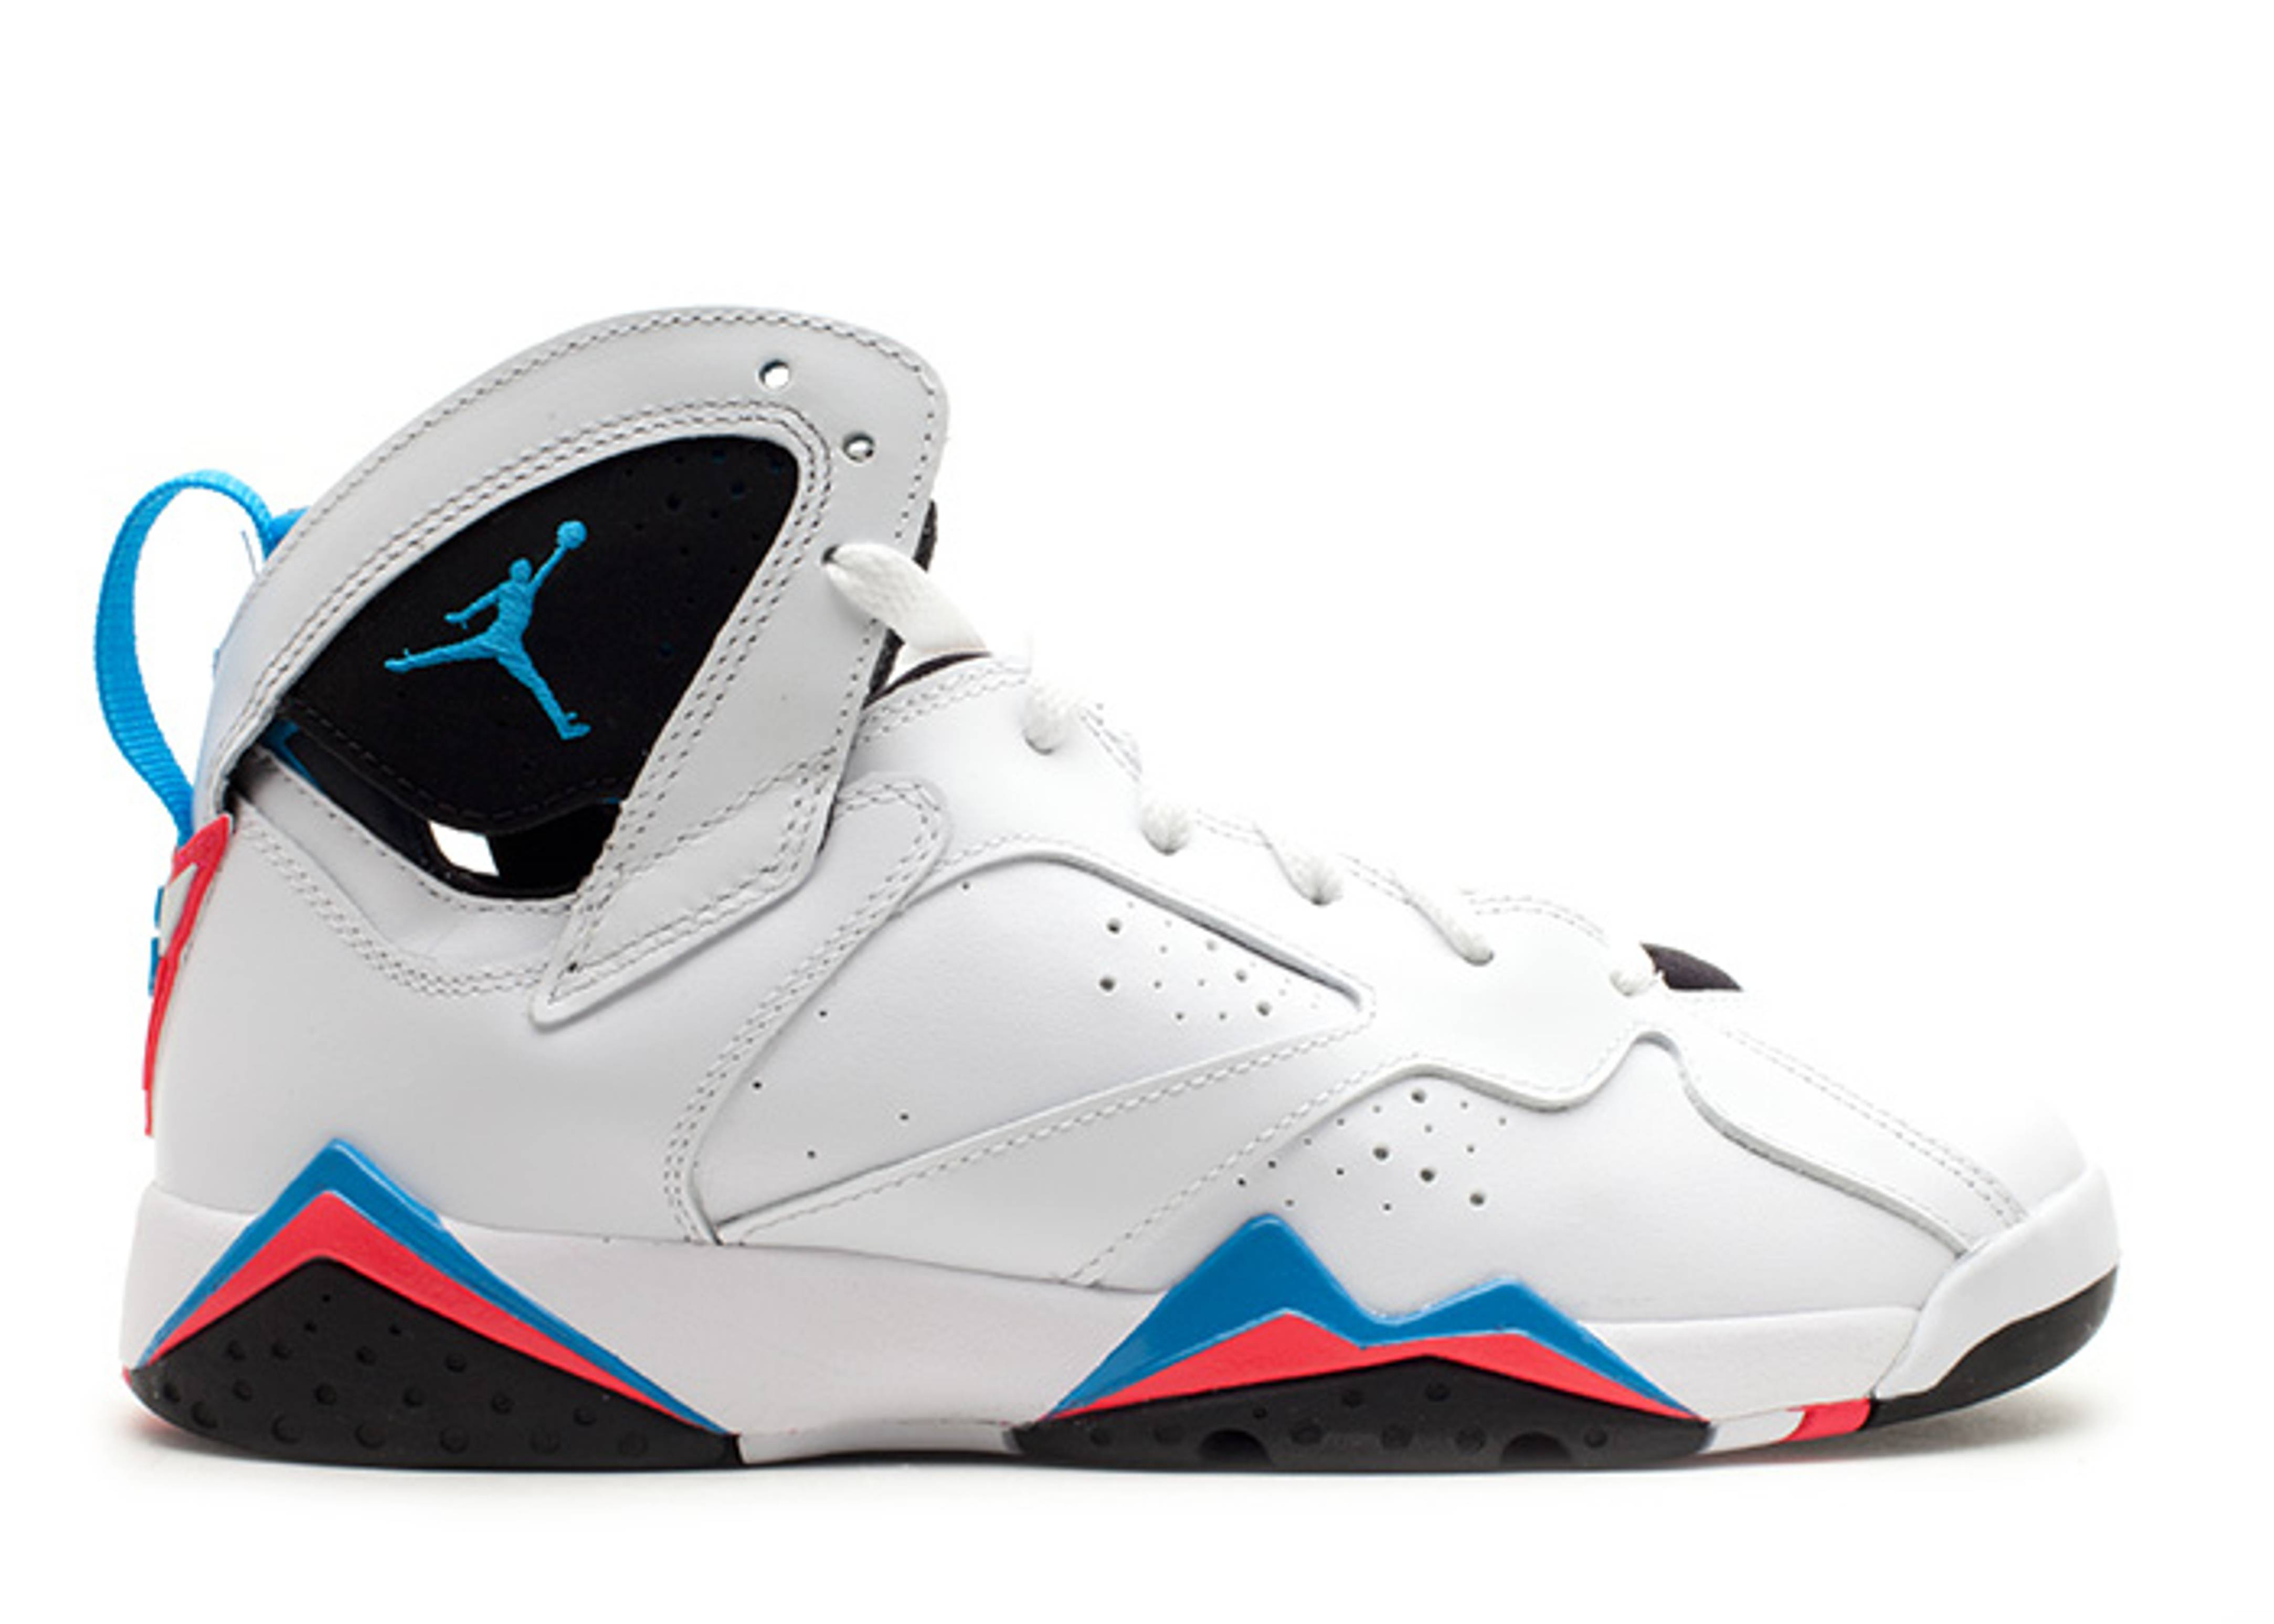 Air Jordan 7 Retro Gs Orion